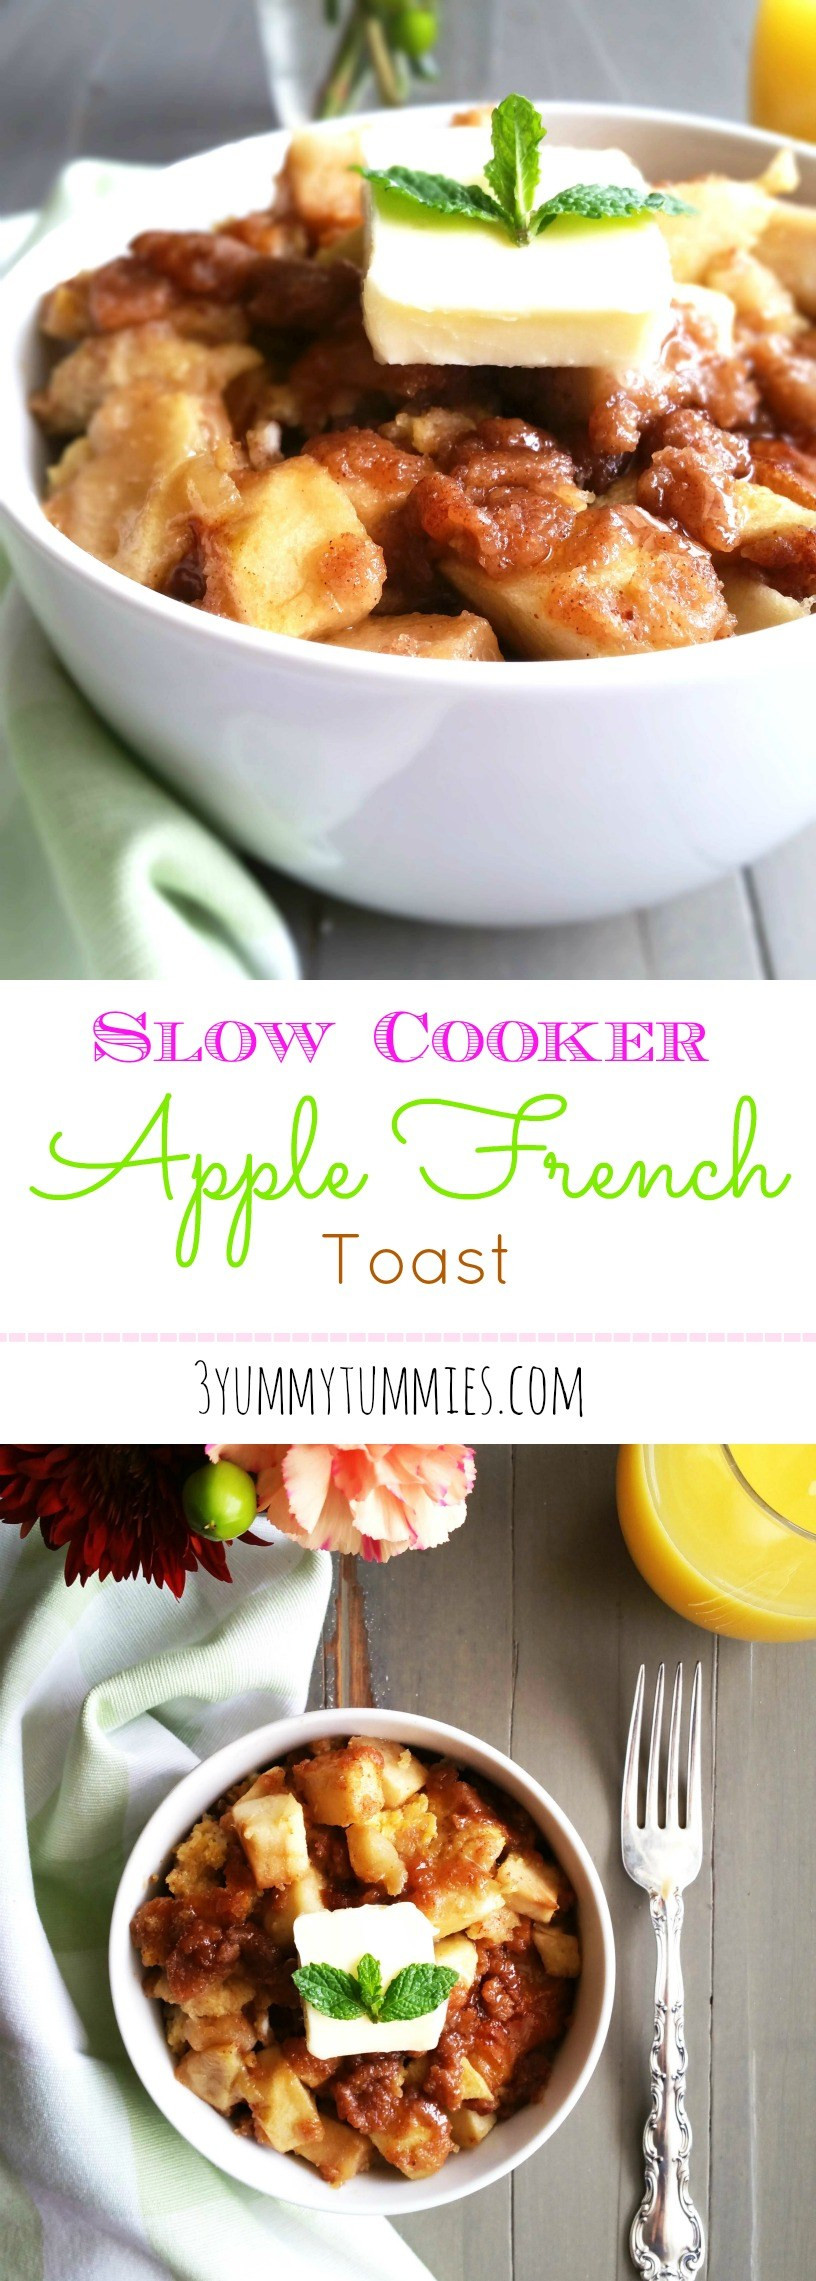 Slow Cooker French Toast  Slow Cooker Apple French Toast